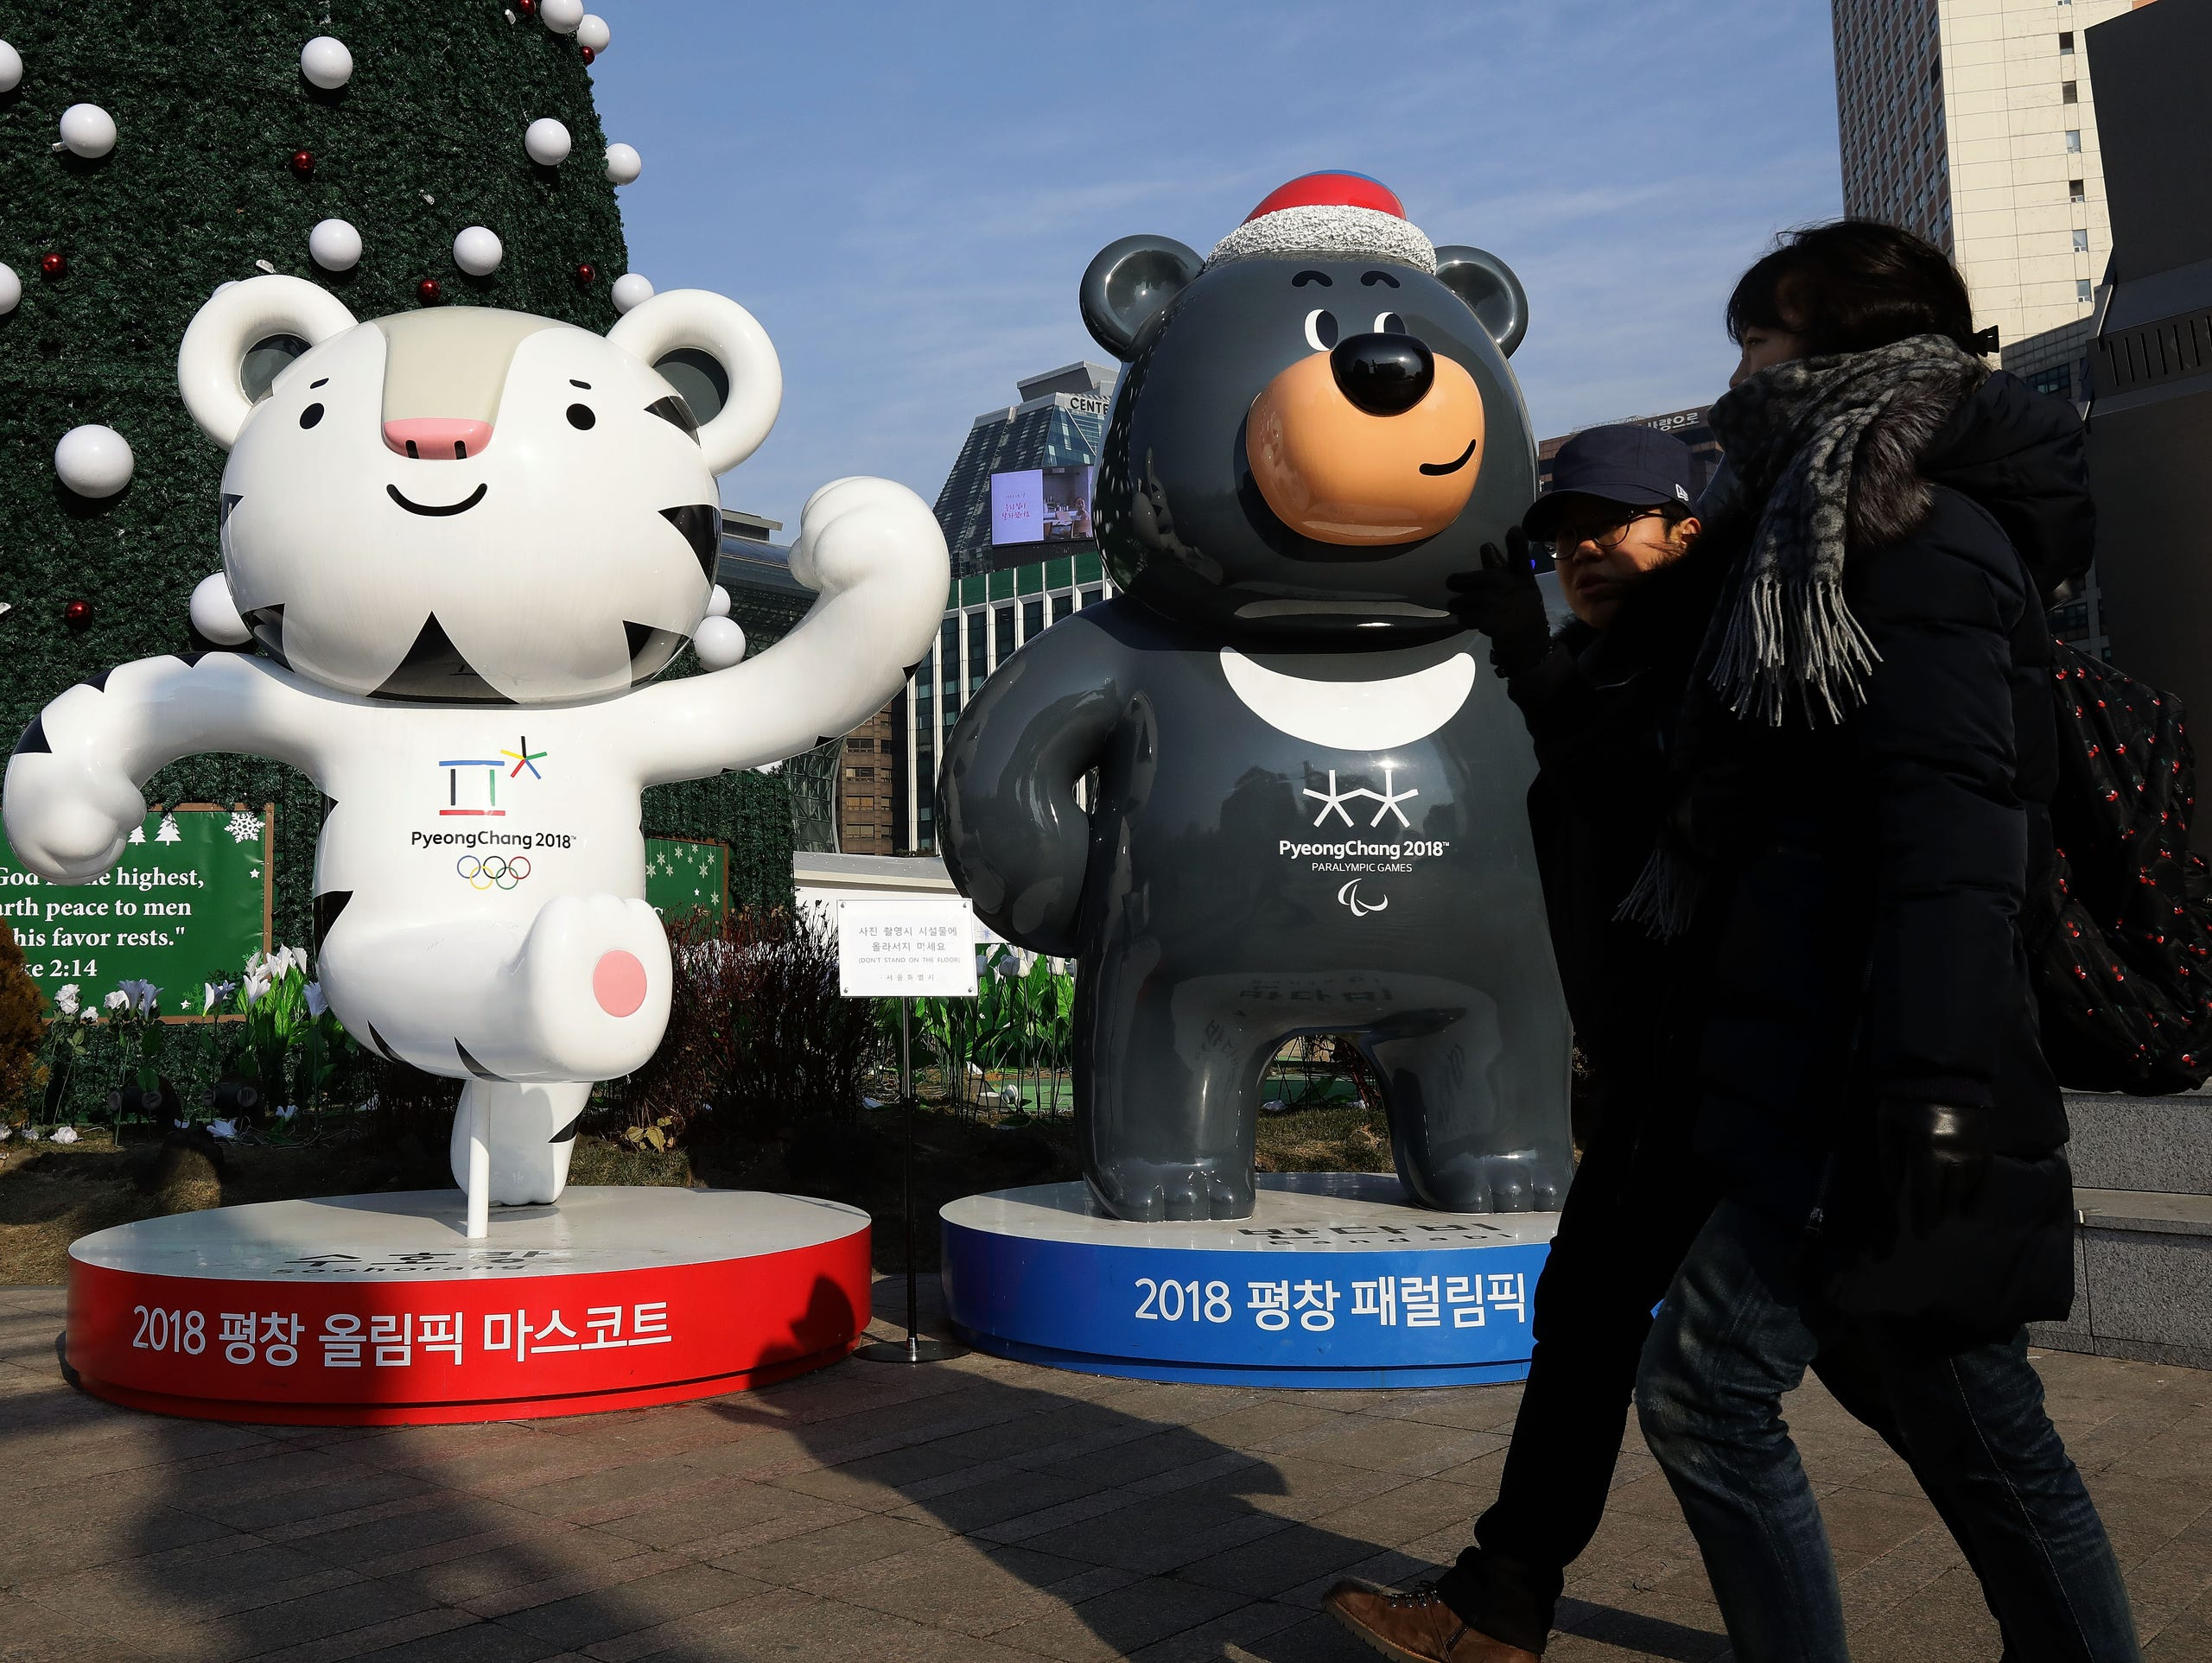 Animal-rights activists hope the Olympic mascots raise awareness about bear farming in South Korea.